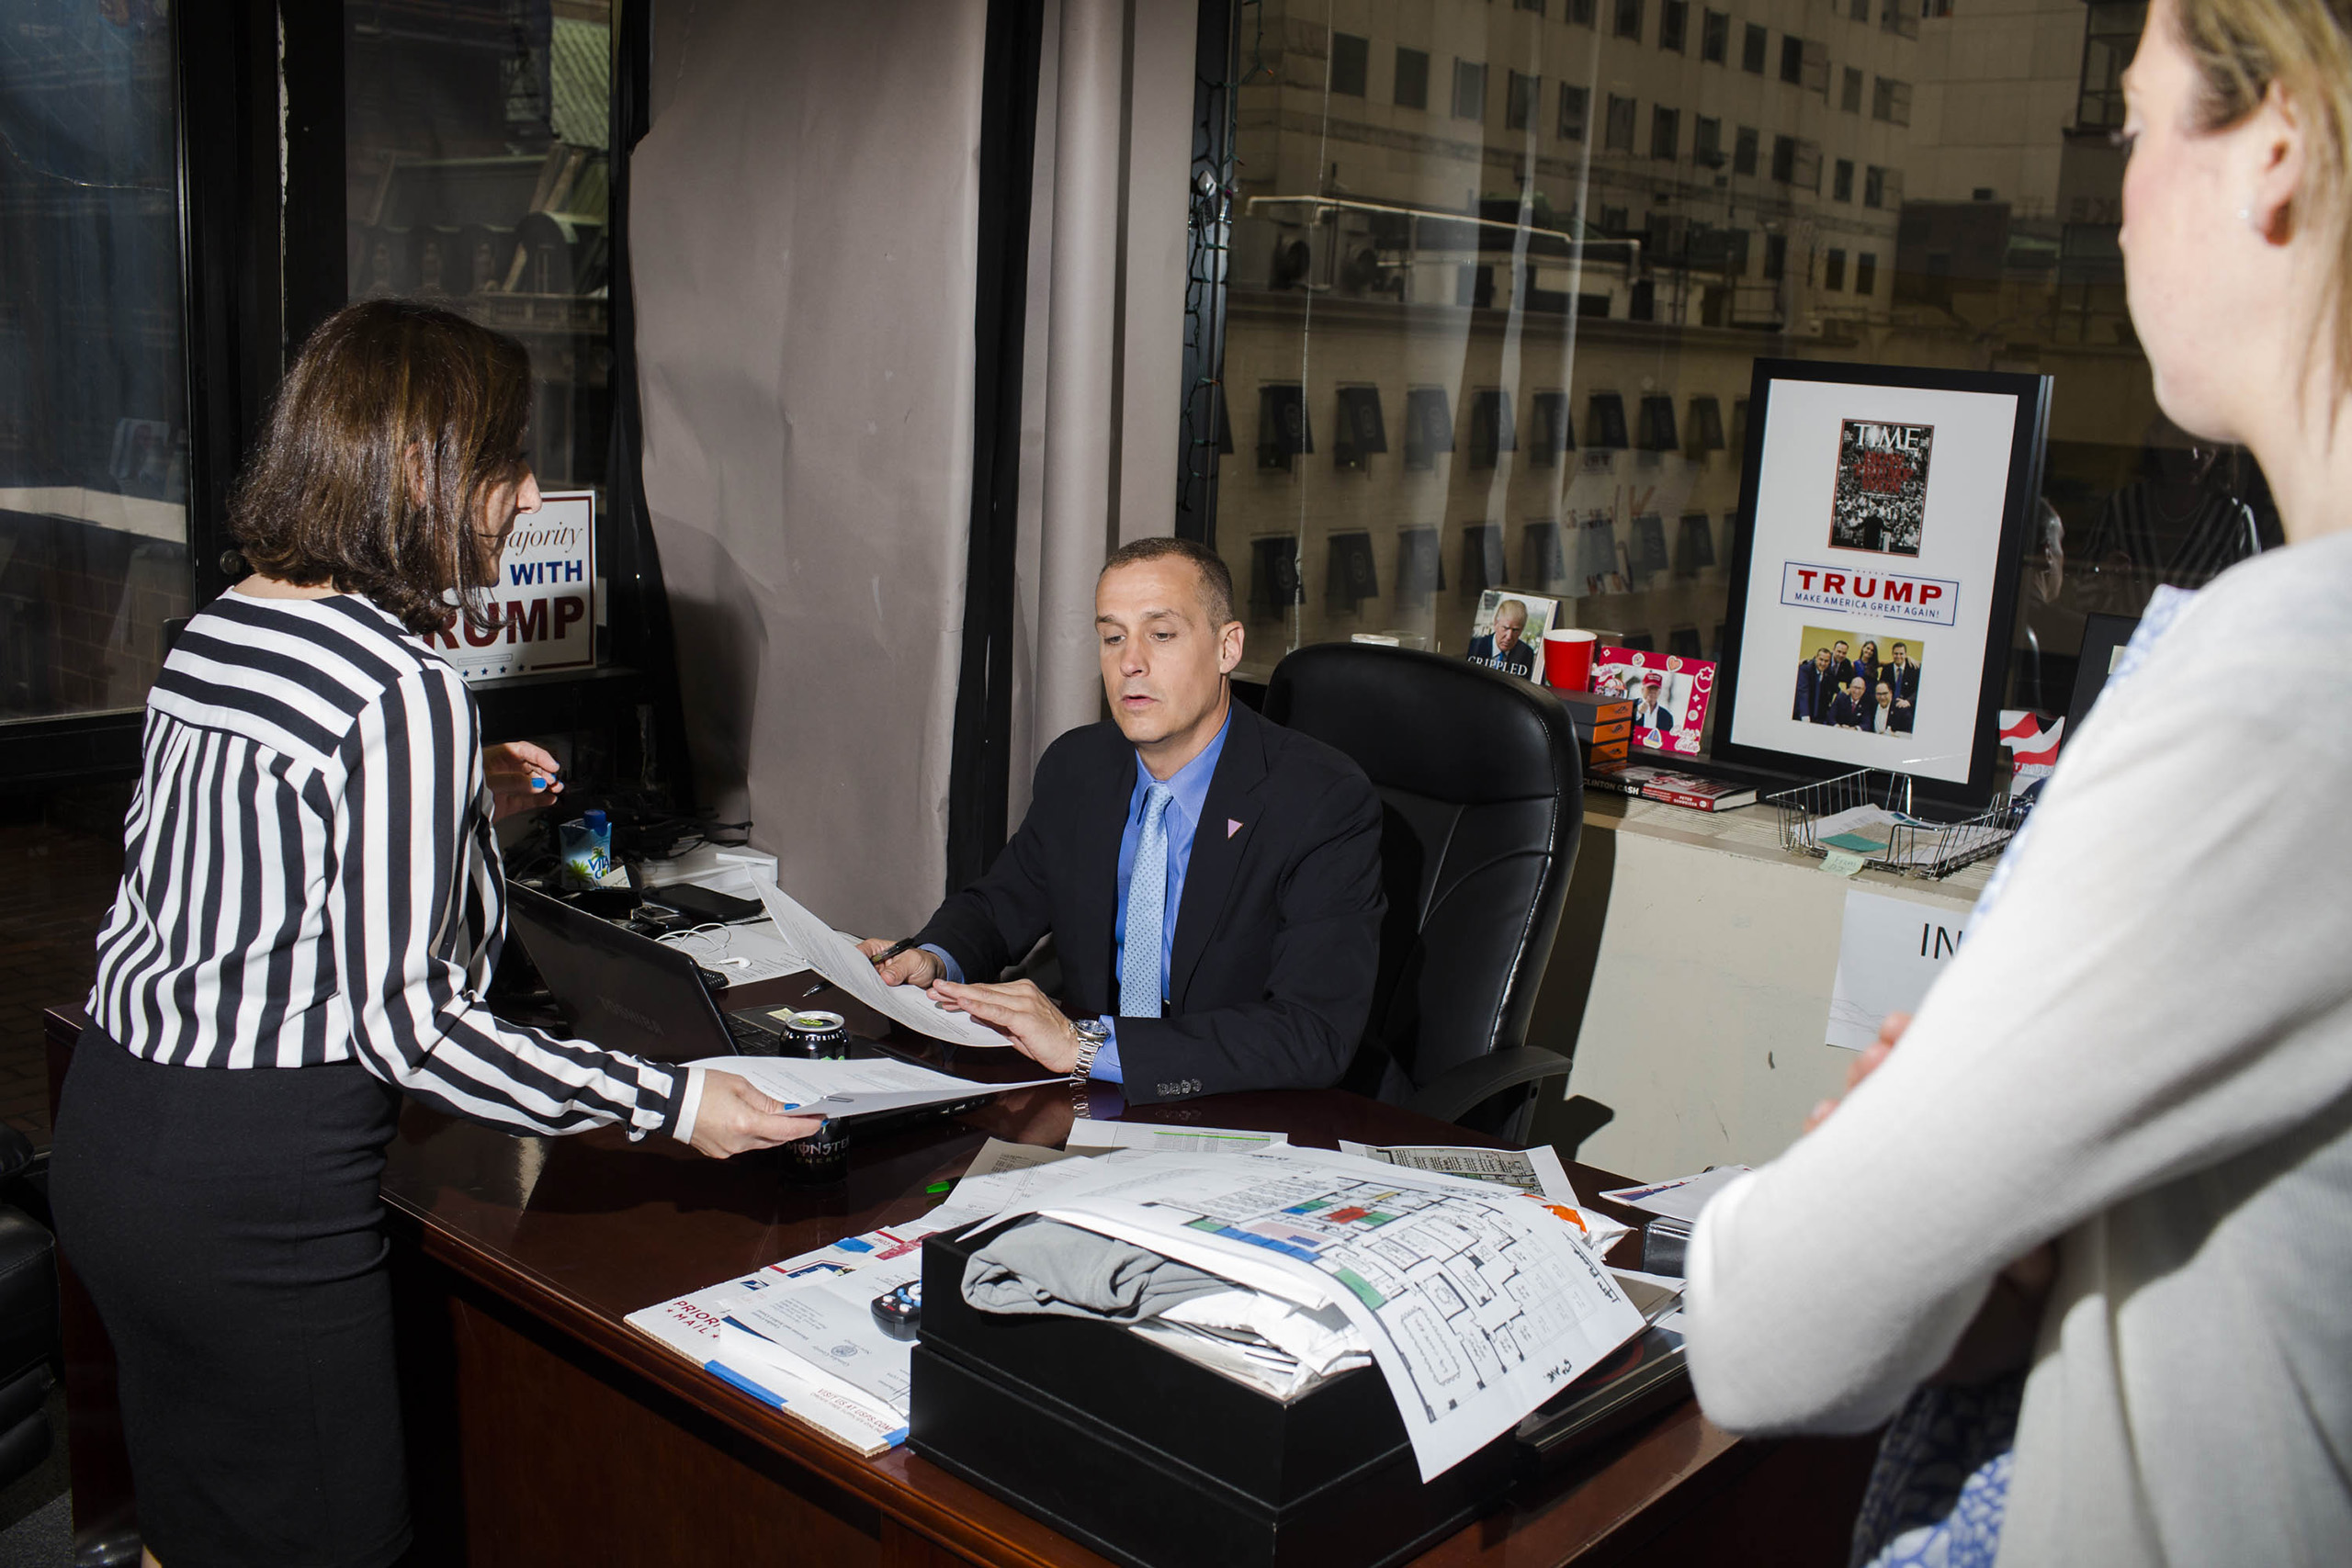 Trump's campaign manager Corey Lewandowski inside the campaign headquarters of Donald Trump on May 24, 2016, in Trump Tower in New York City.